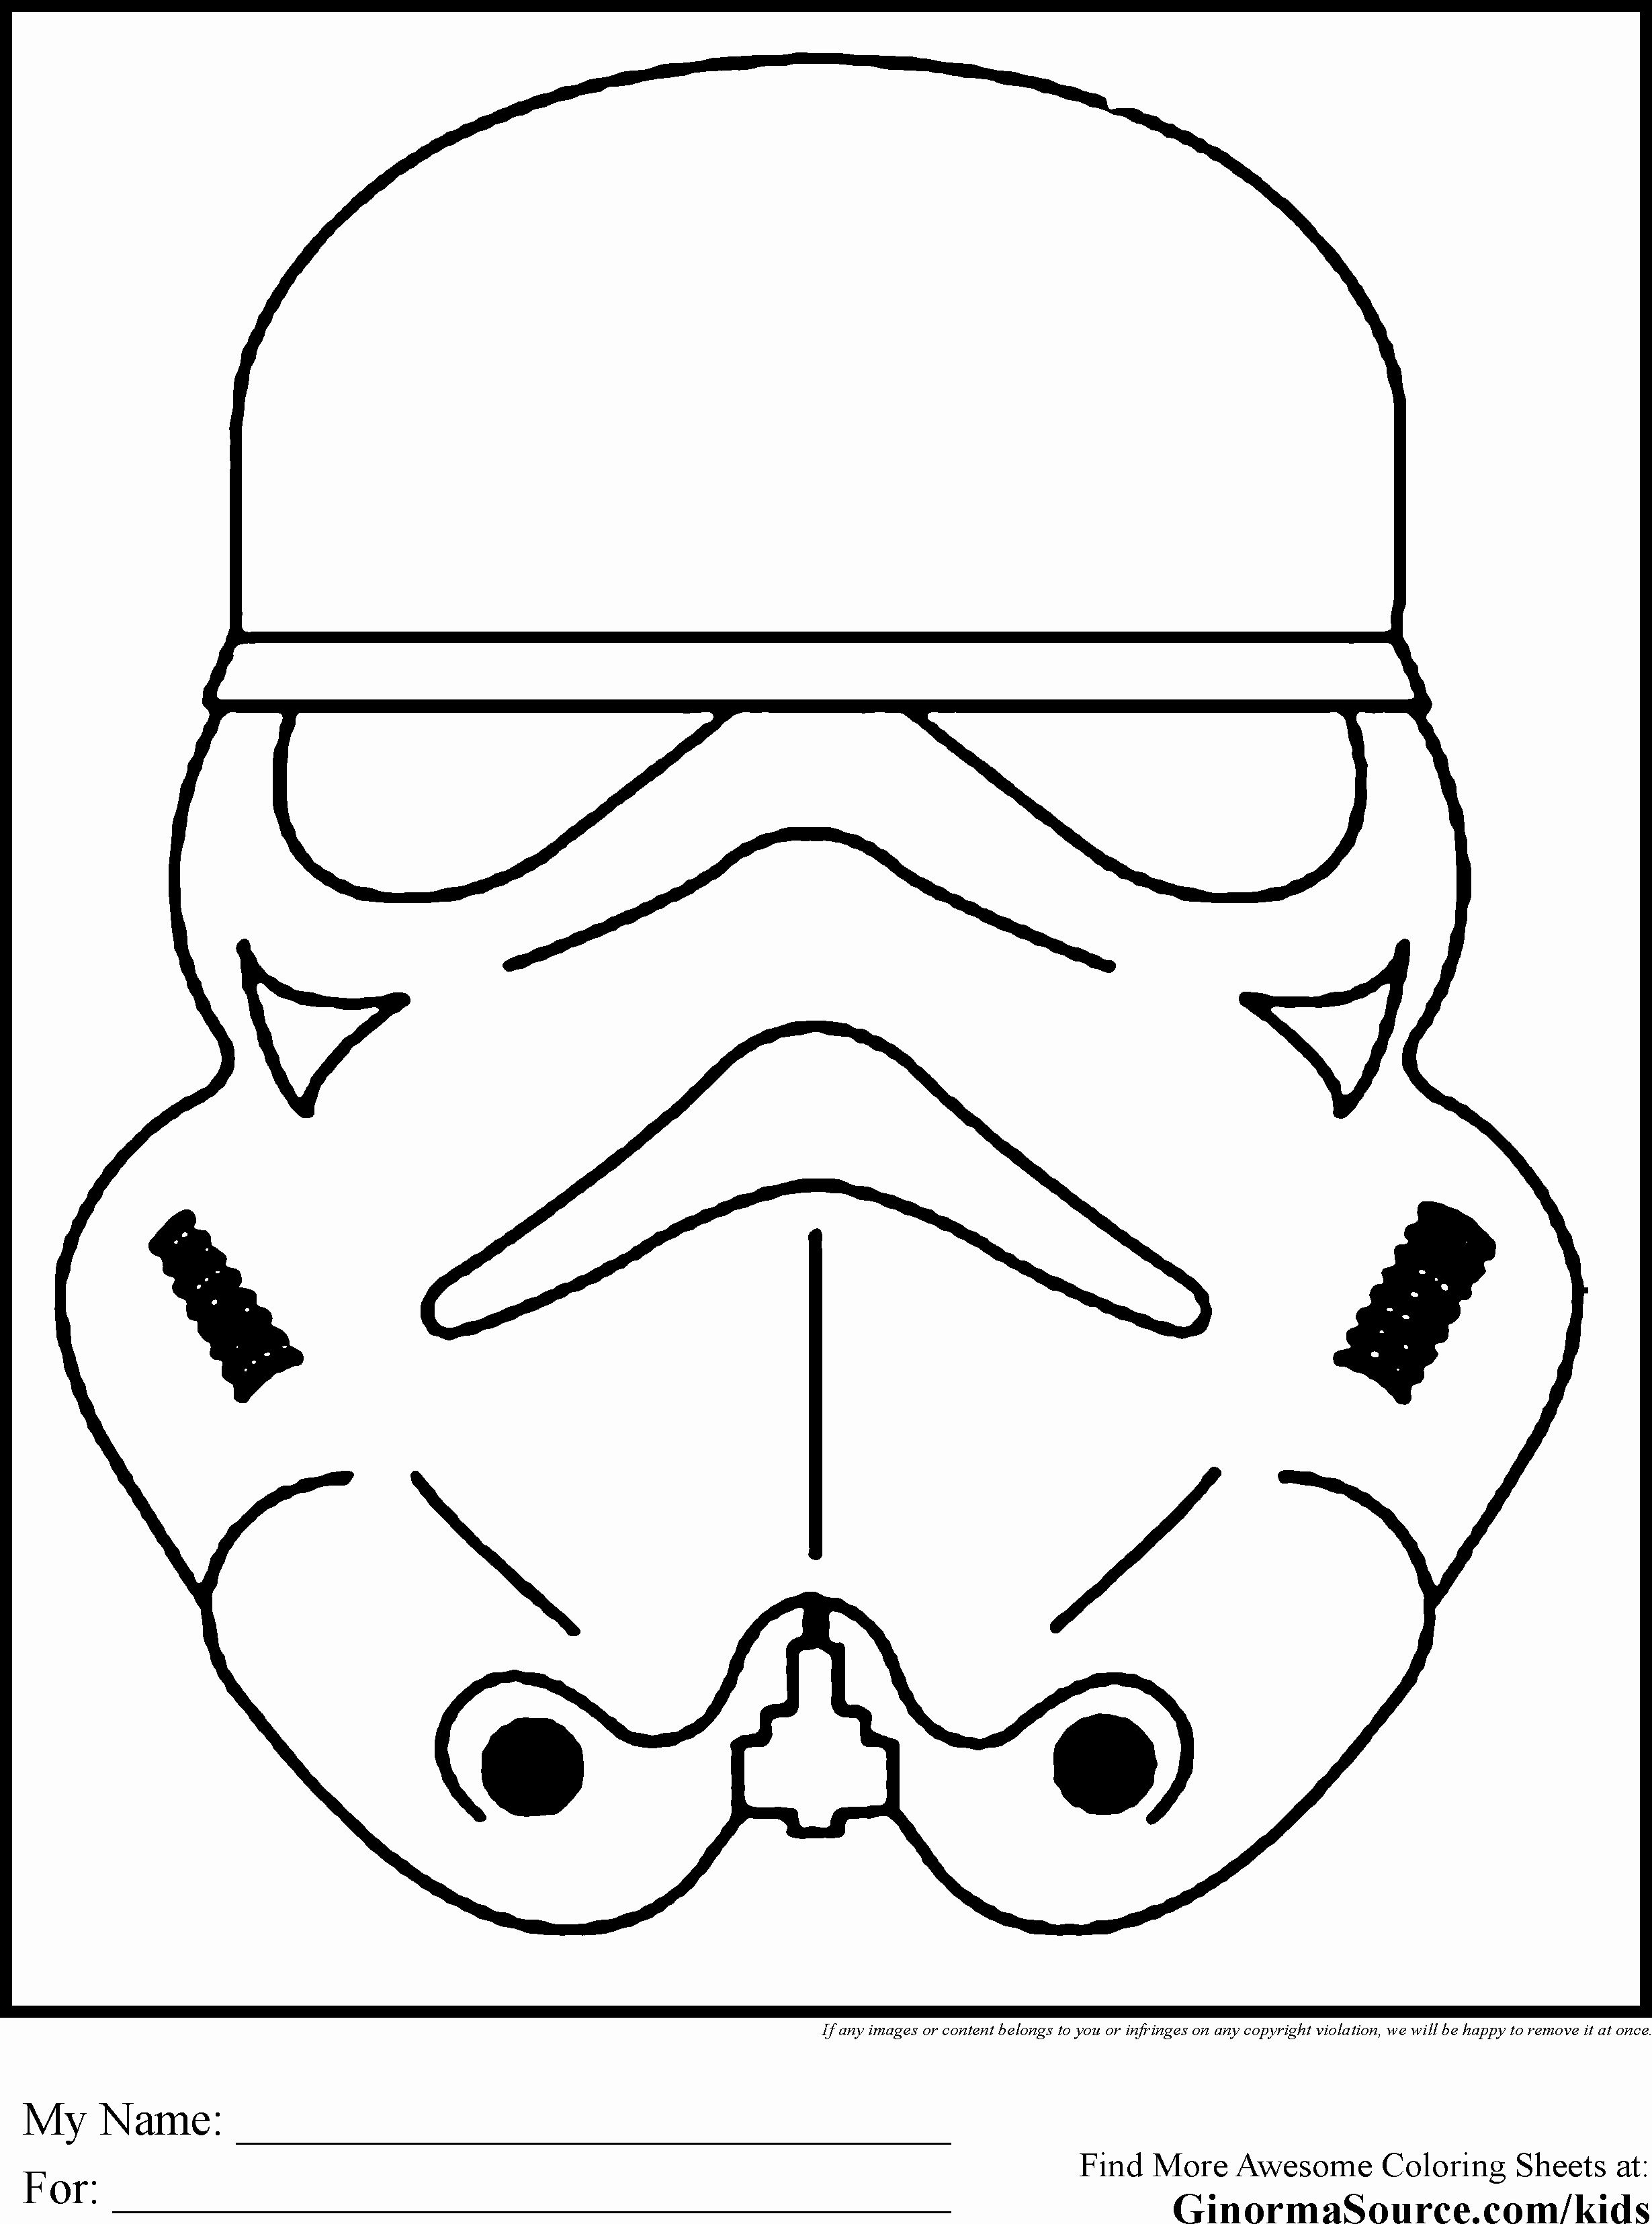 Star Wars Coloring Pages Easy Fresh Coloring Books Storm Trooper Coloring Page Anovos First Star Wars Colors Star Wars Mask Printable Star Wars Masks